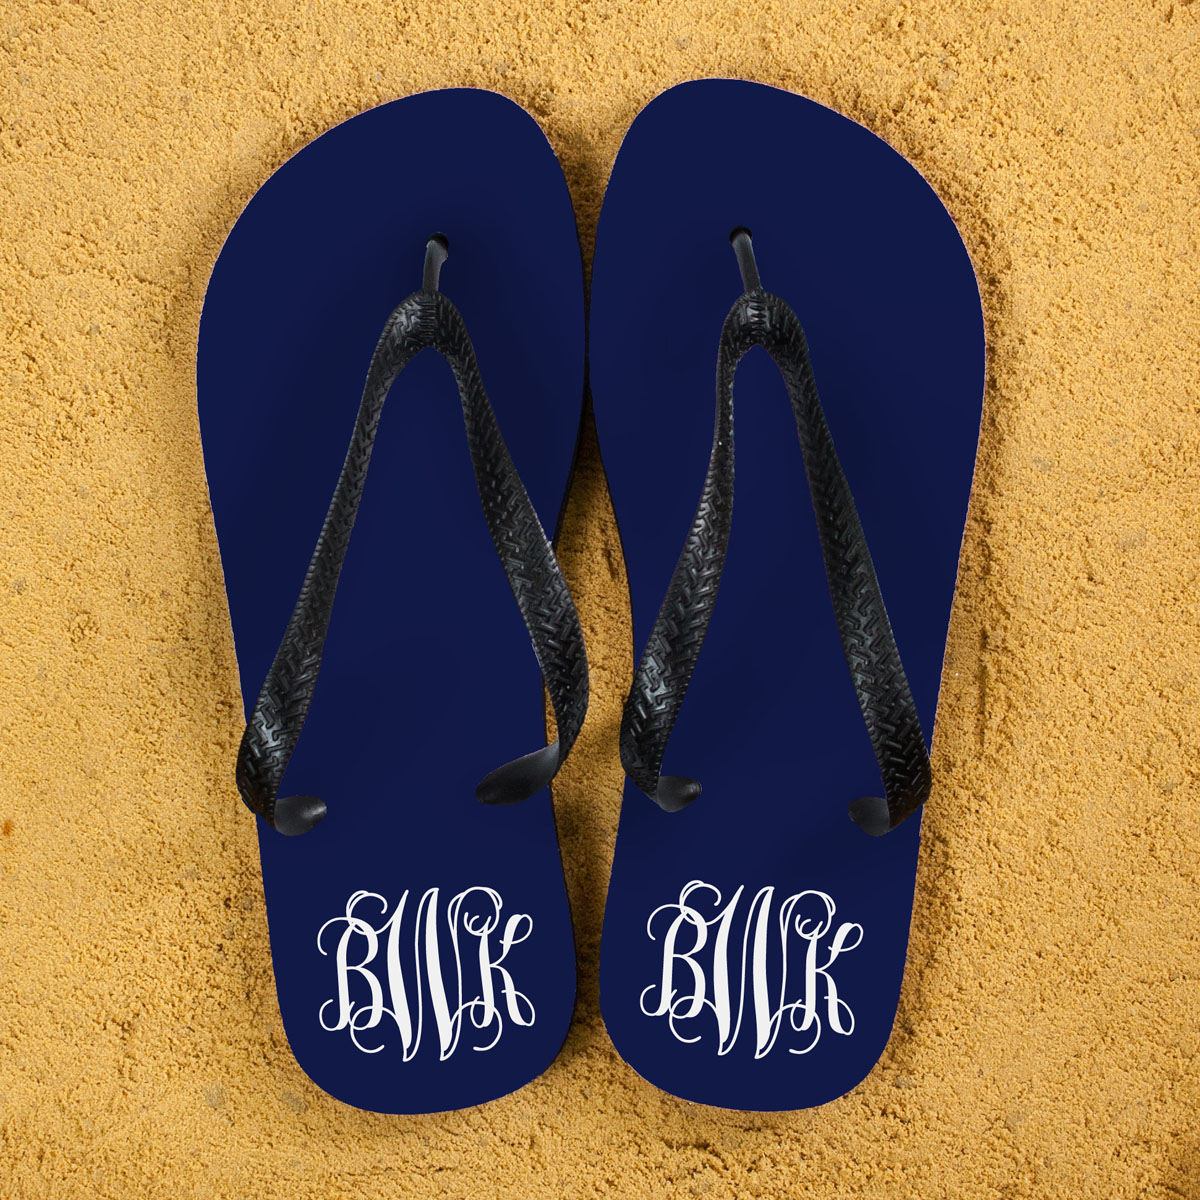 Monogrammed Flip Flops in Blue and White